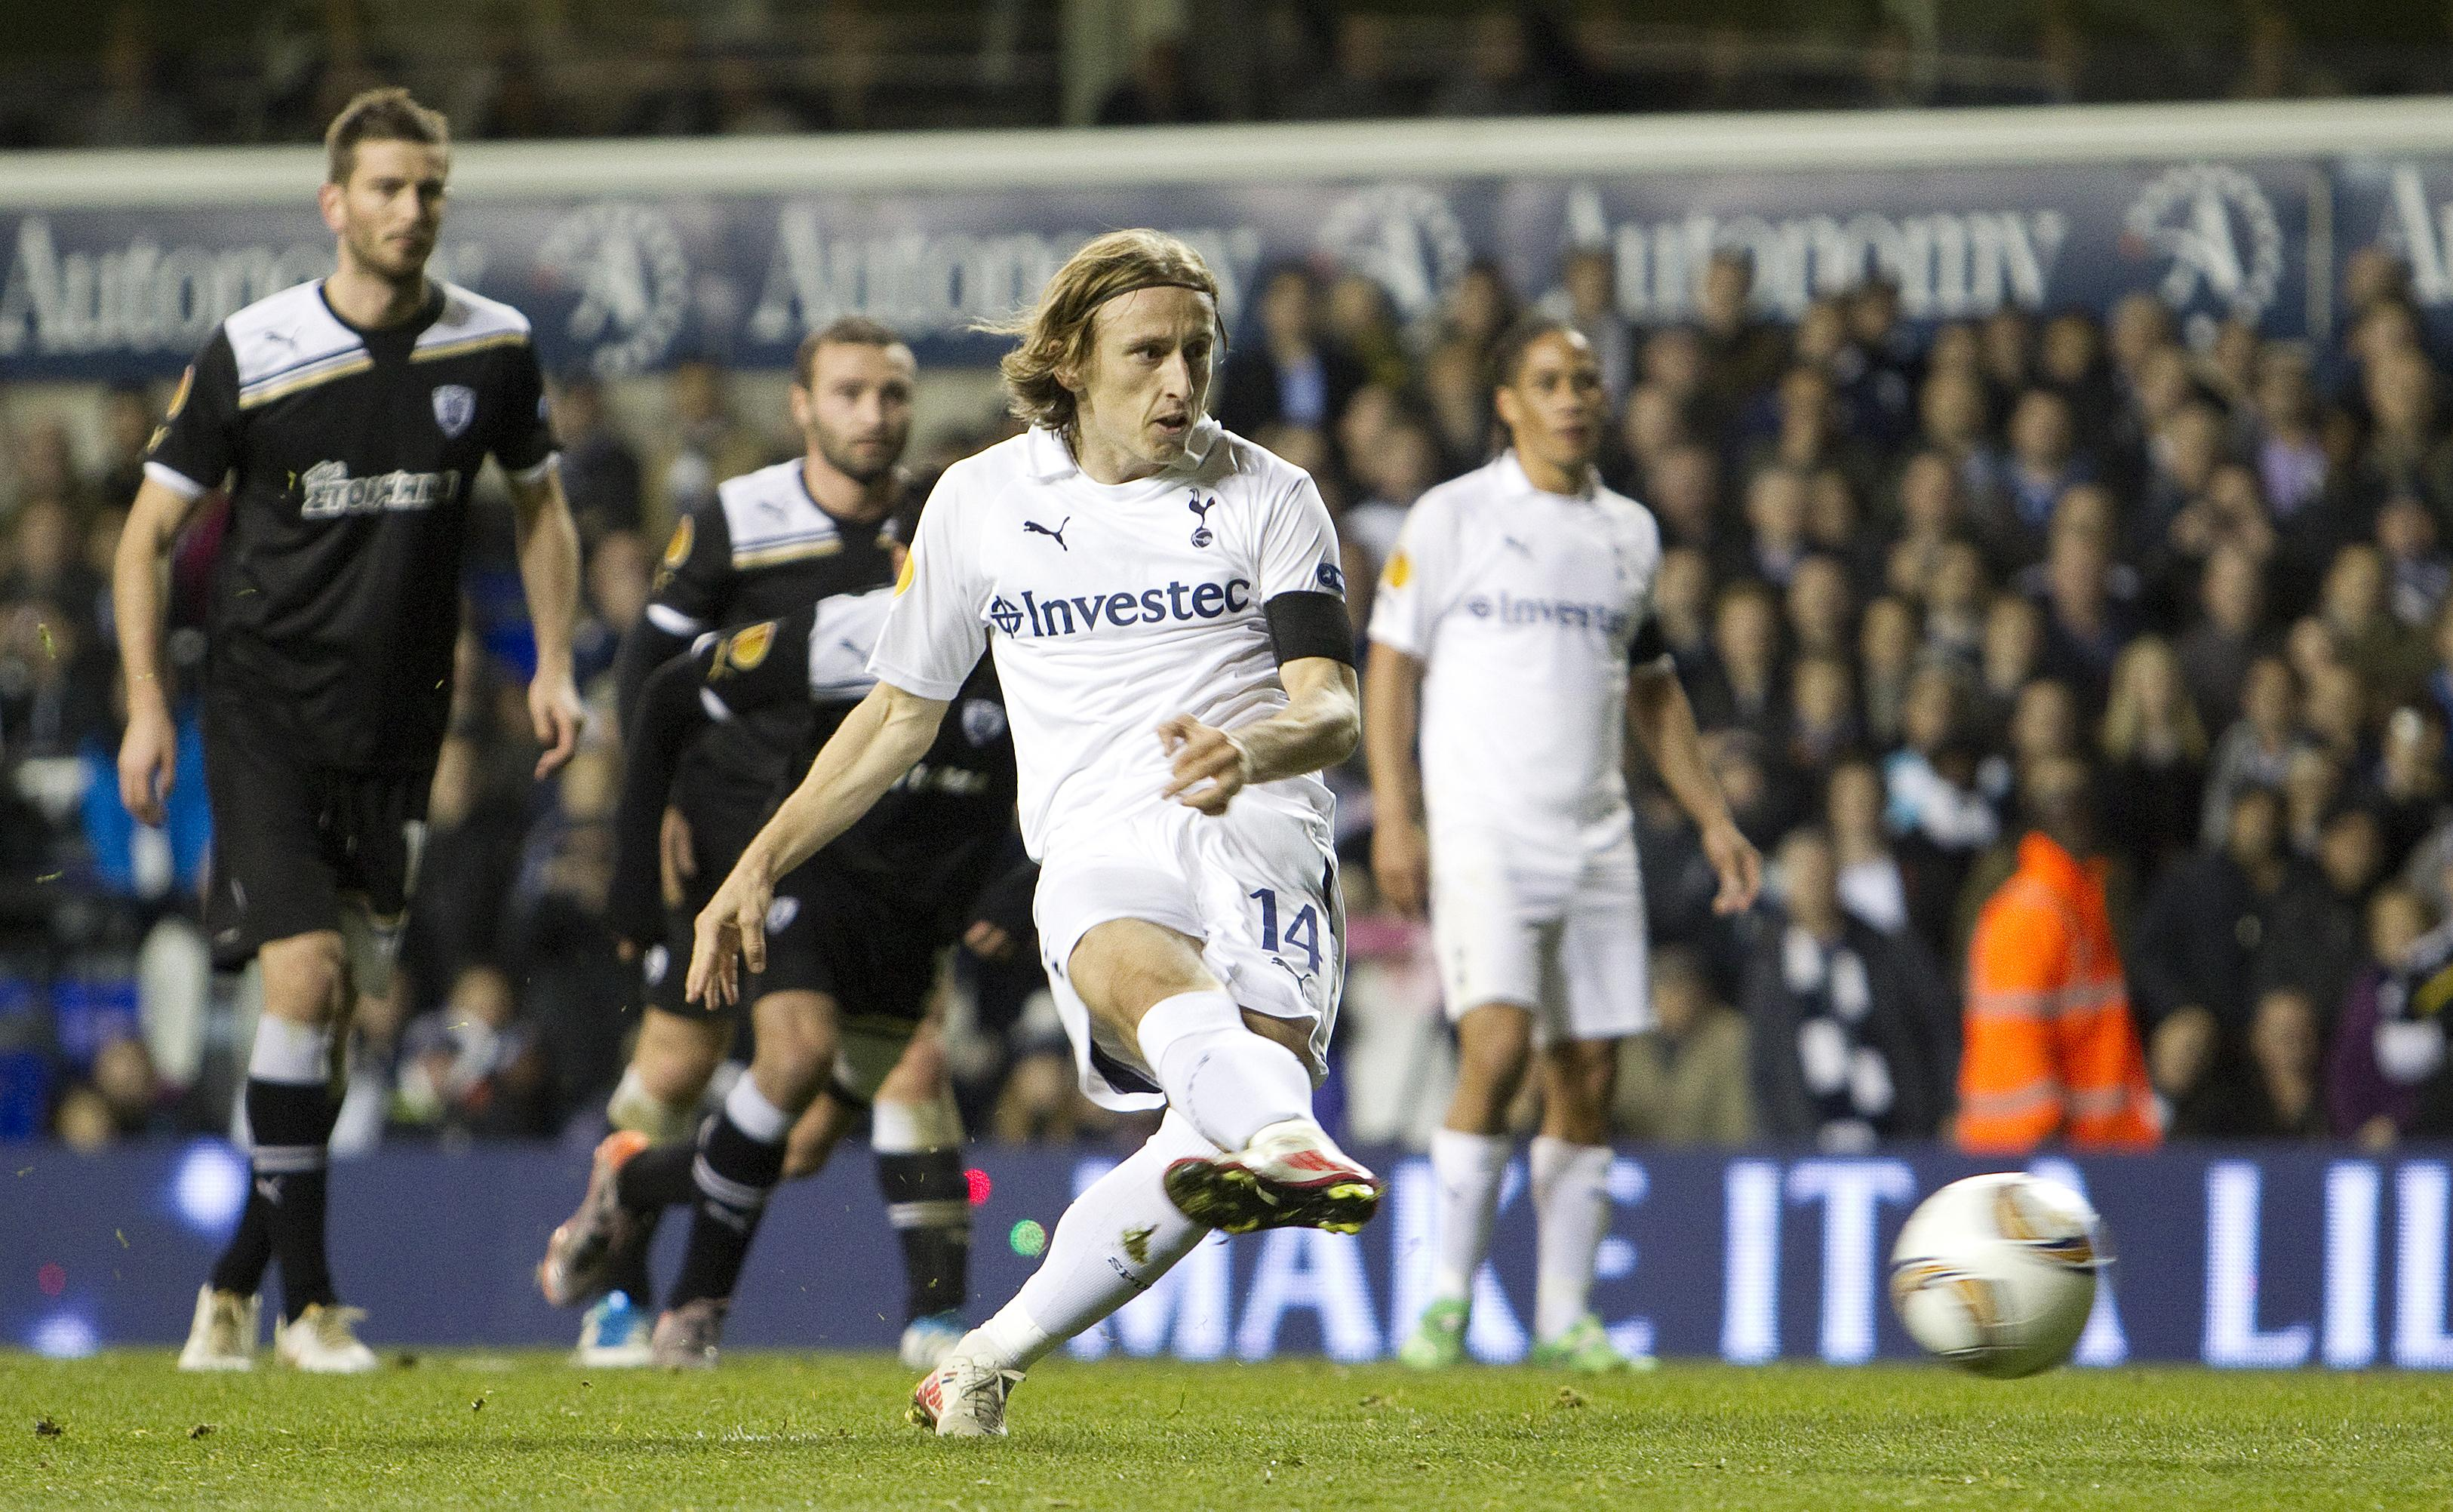 Imagine if Spurs still had this guy